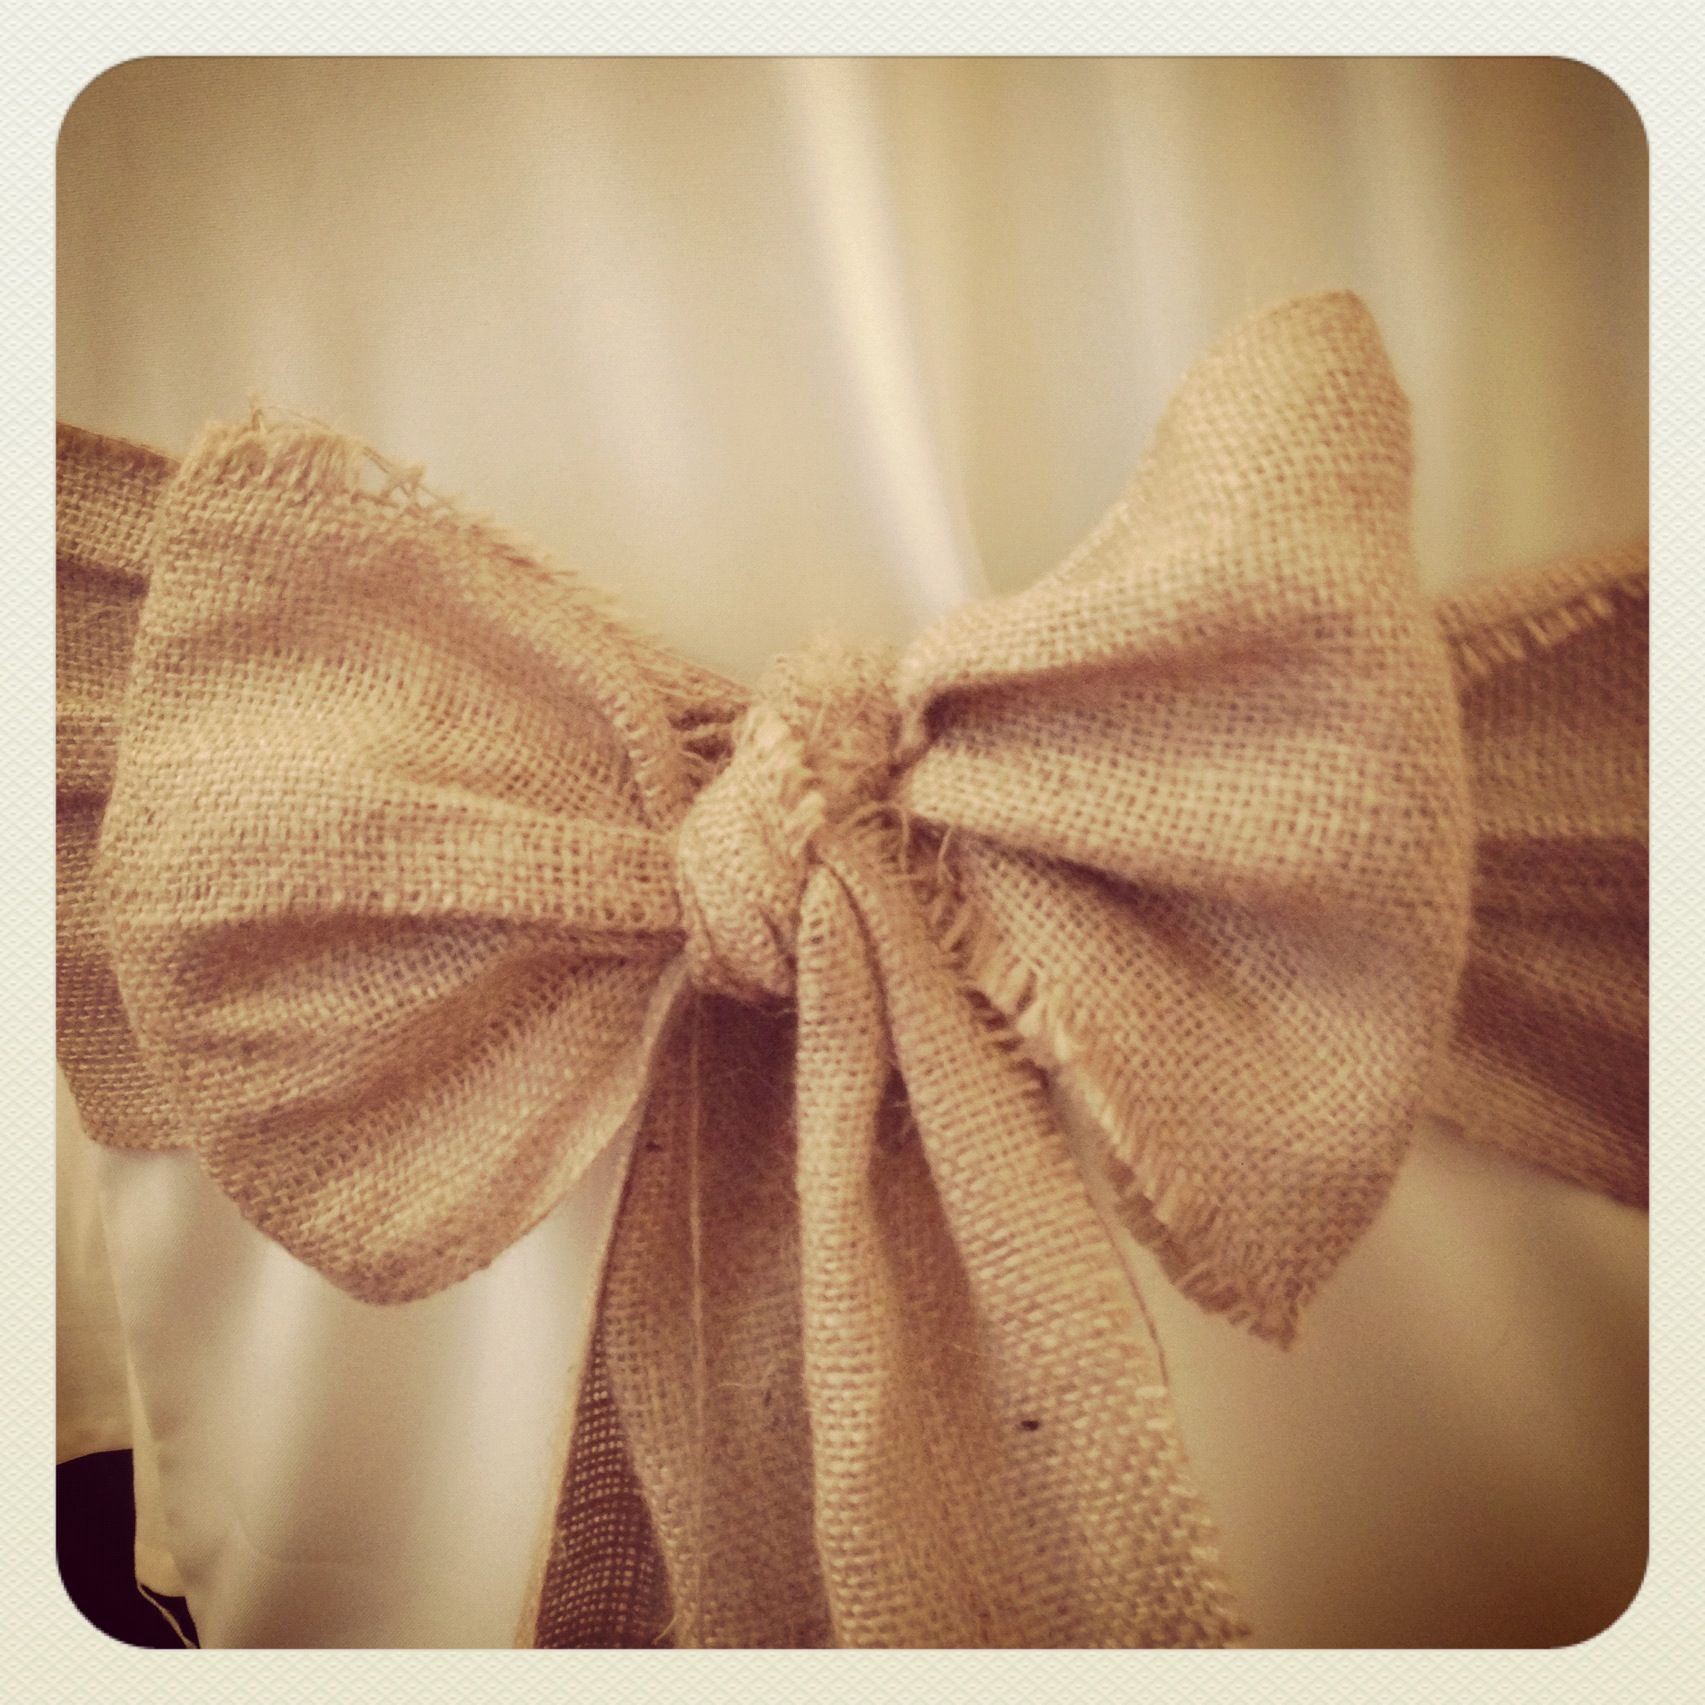 Our new Hessian wedding chair sashes